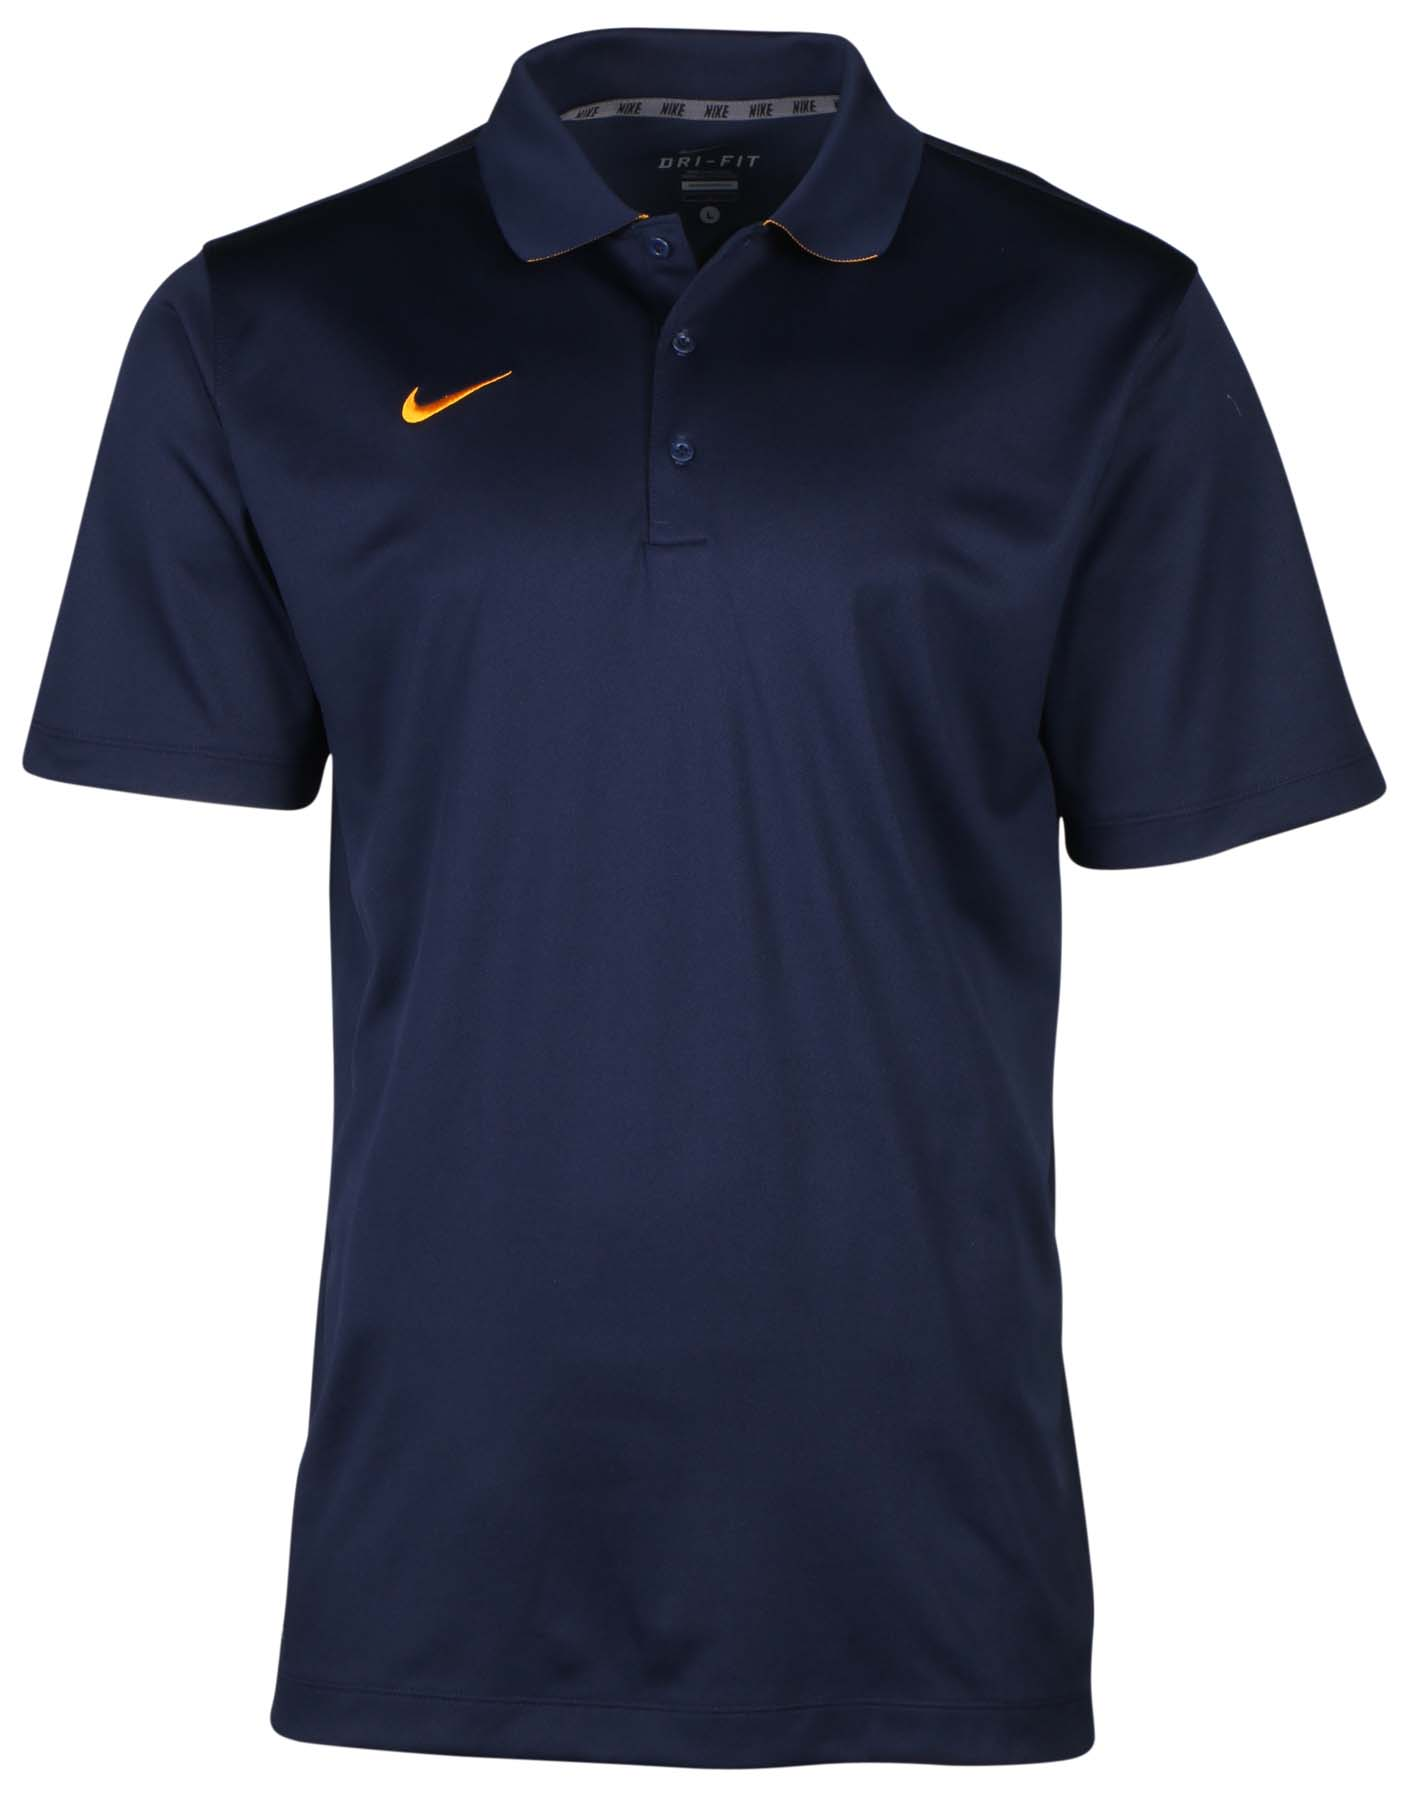 Nike Men's Dri-Fit Football Polo Shirt | eBay